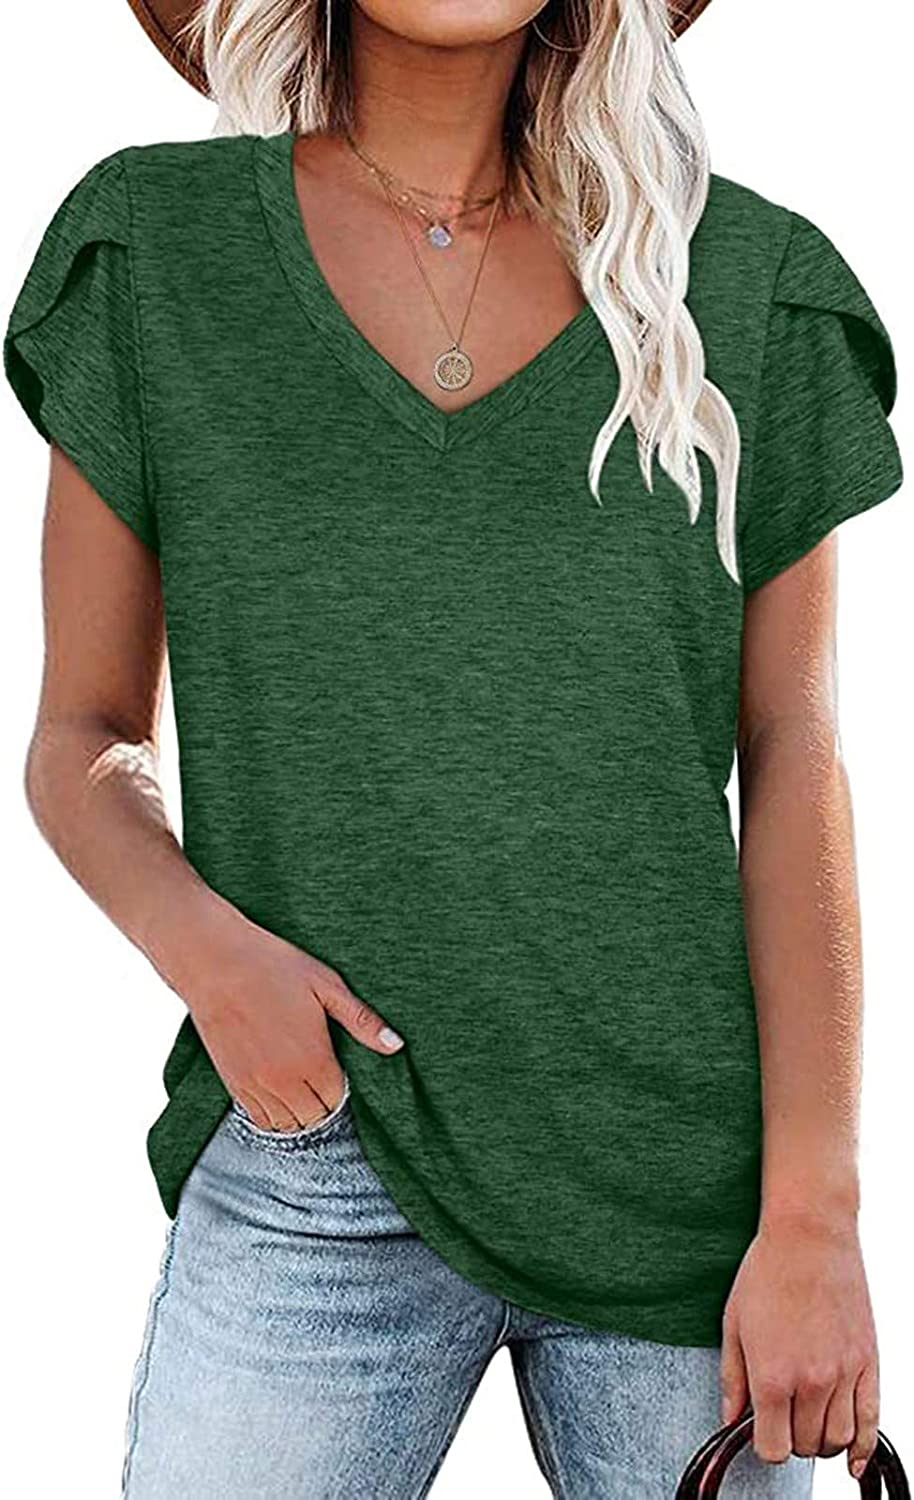 Womens Summer Tops, Women V Neck T Shirts Short Petal Sleeve Casual Loose Fit Basic Tunic Top Fashion Blouse S-2XL